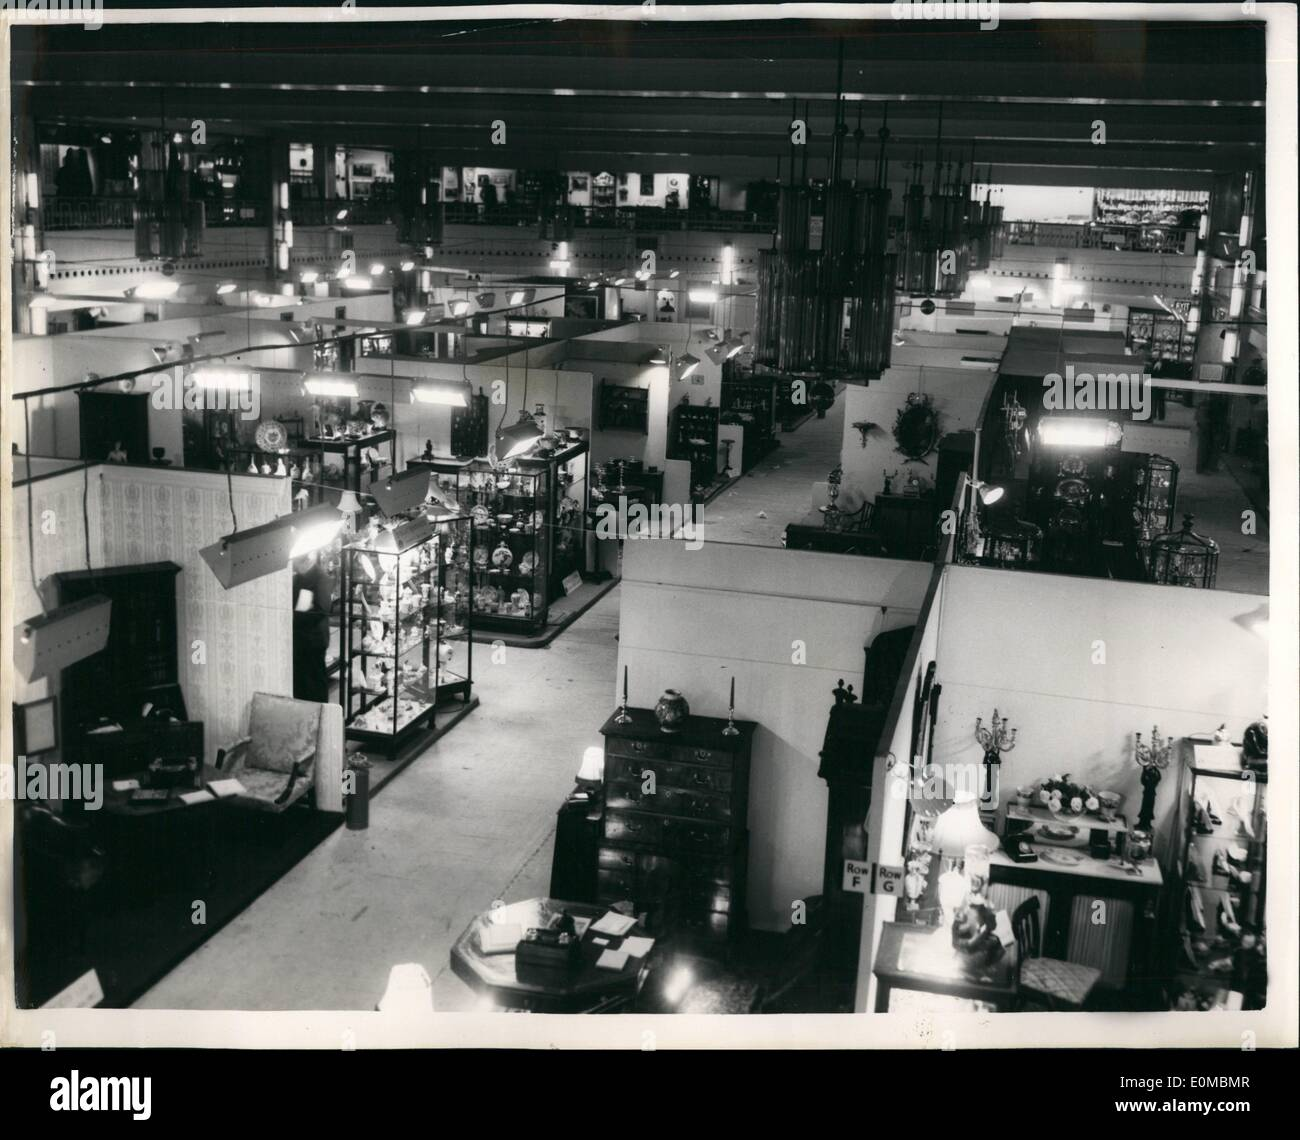 Jun. 06, 1954 - Antique Dealers' Fair and Exhibition at Grosvenor House. Photo Shows A view of the exhibition showing some of the exhibits on show today. - Stock Image